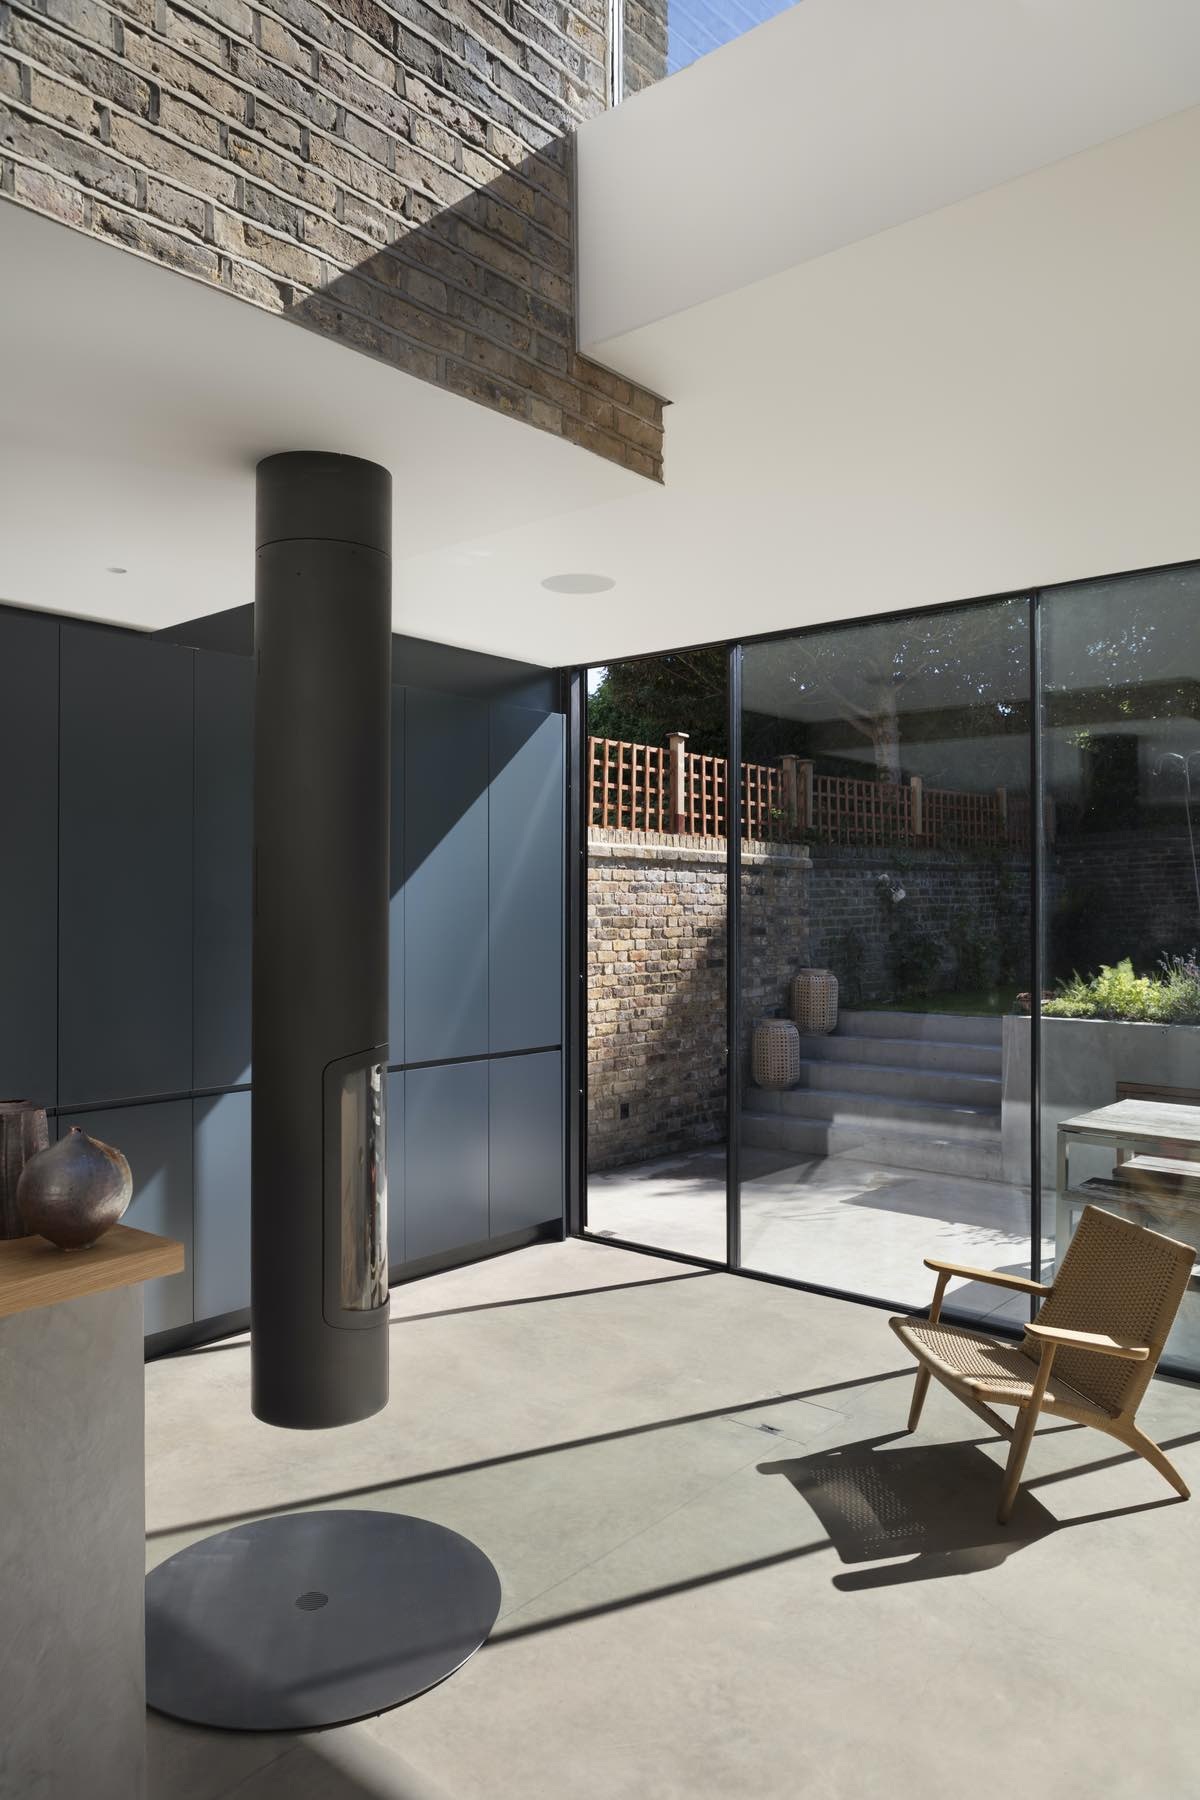 a modern metallic chimney in the kitchen and dining area